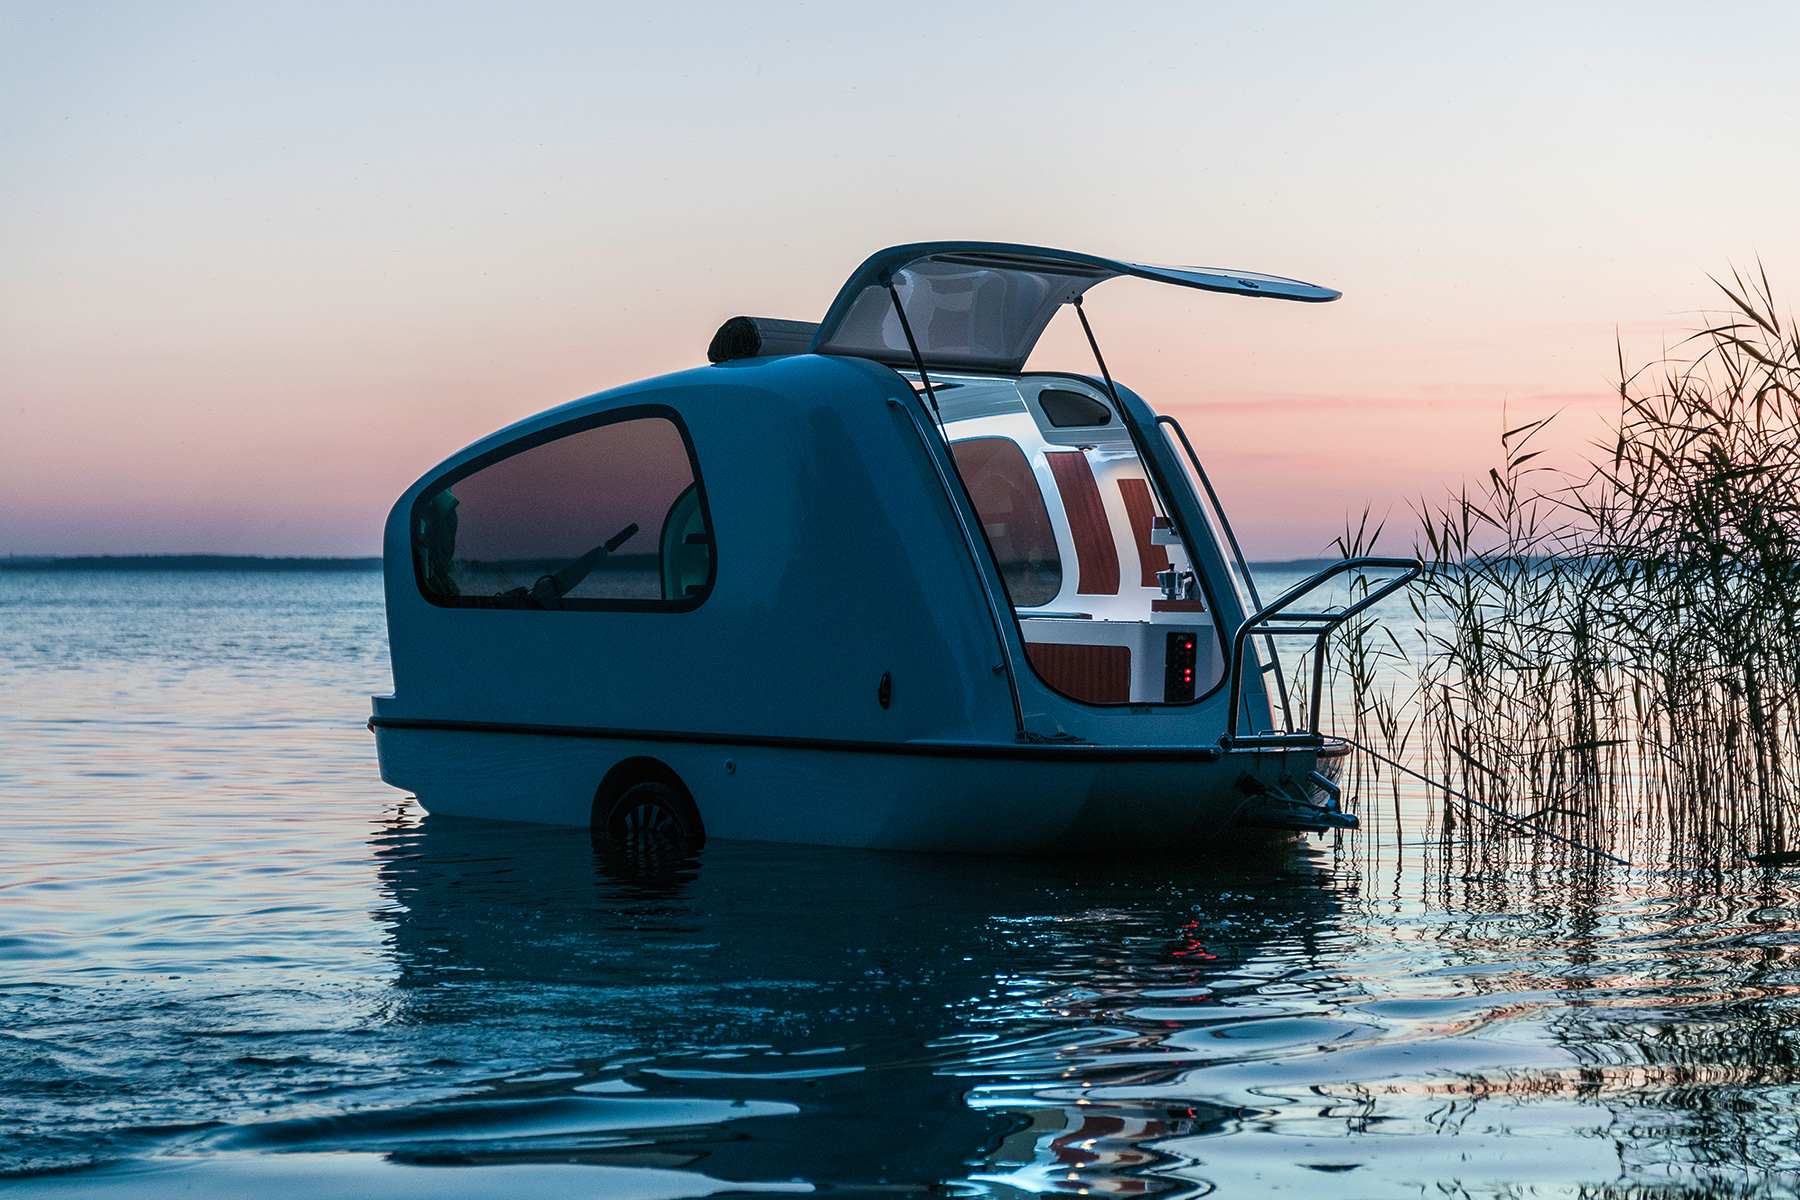 The Sealander Is an RV That Doubles as a Yacht